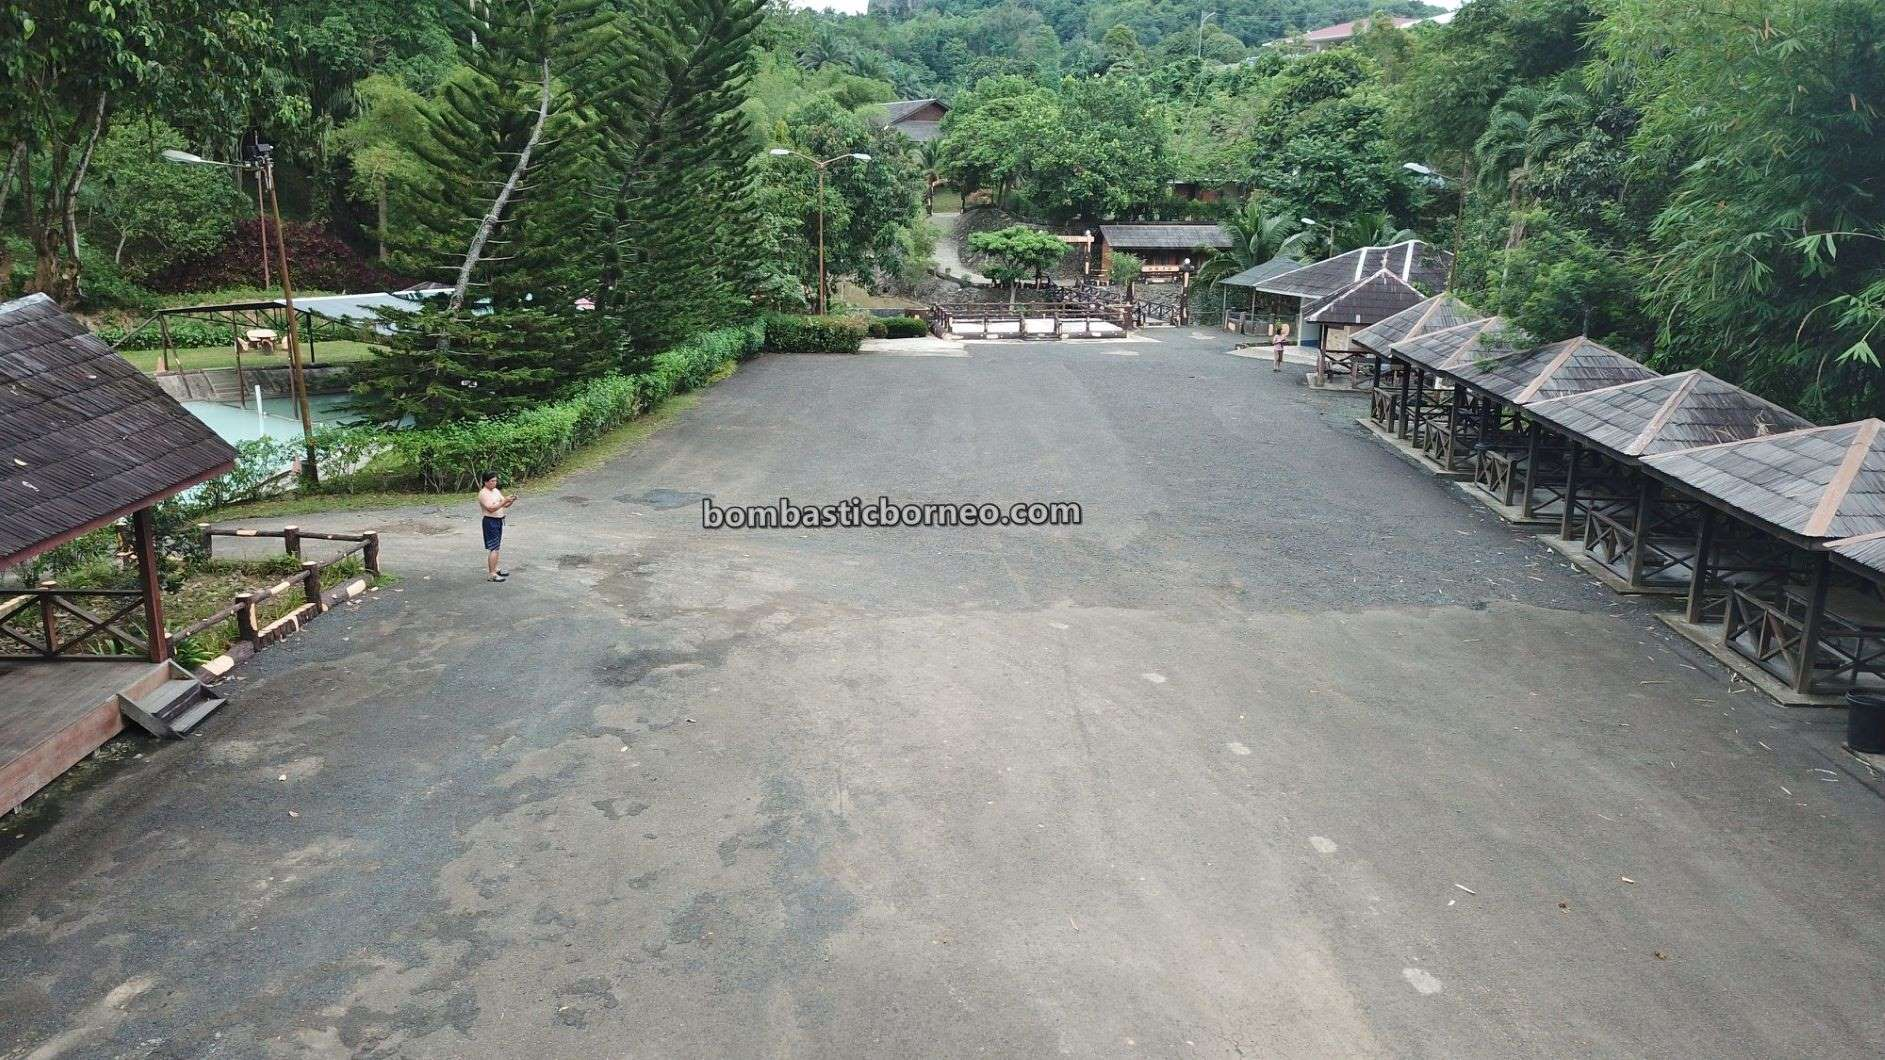 Sankina Hotspring Park, nature, outdoor, recreational, water park, destination, exploration, family vacation, holiday, Tawau, Sabah, Malaysia, Tourism, Travel guide, Borneo,